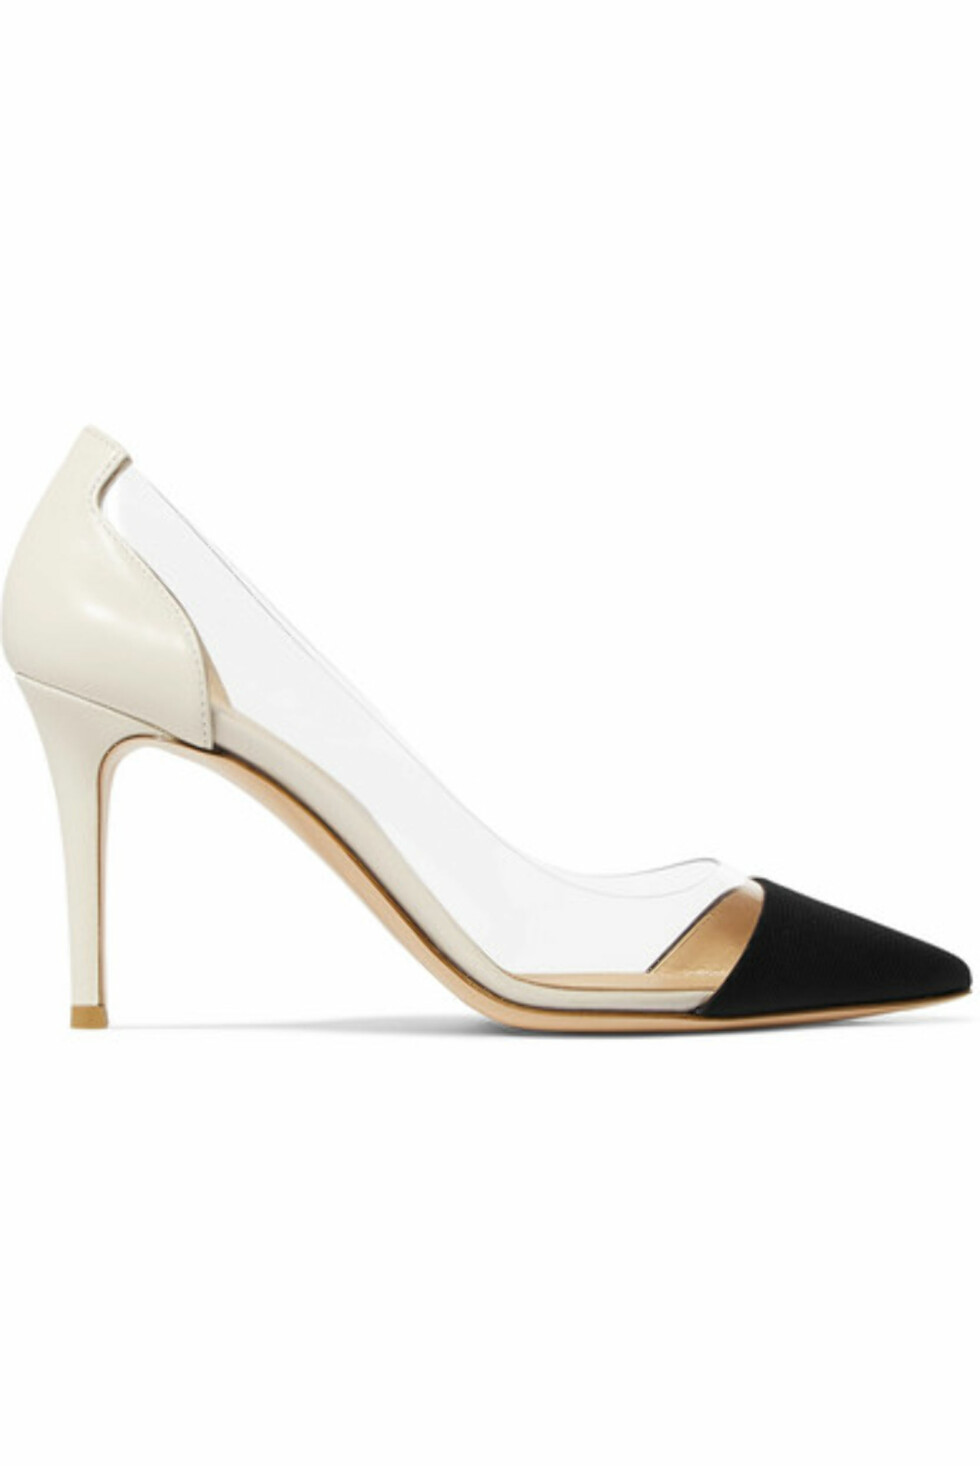 Sko fra Gianvito Rossi |5800,-| https://www.net-a-porter.com/no/en/product/992556/Gianvito_Rossi/plexi-85-faille-leather-and-pvc-pumps